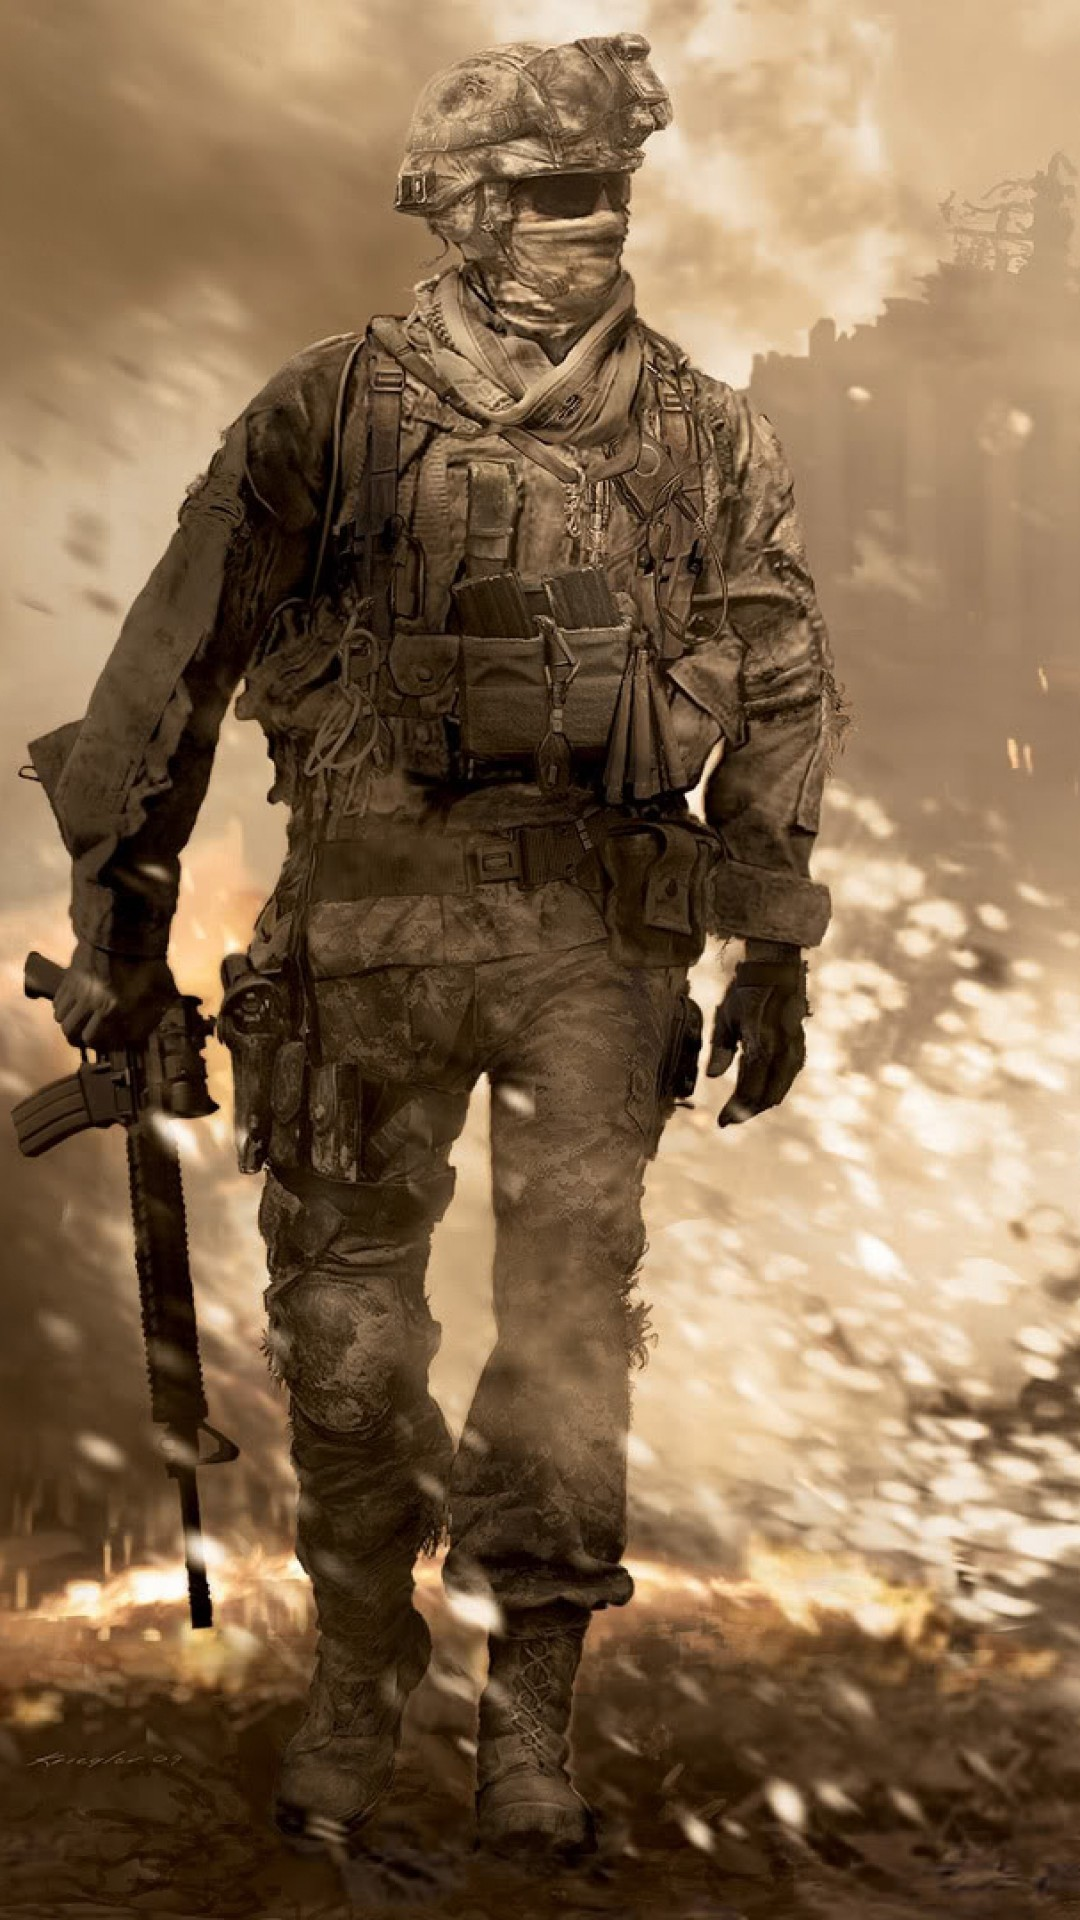 Preview wallpaper call of duty, soldier, gun, glasses, explosion 1080×1920